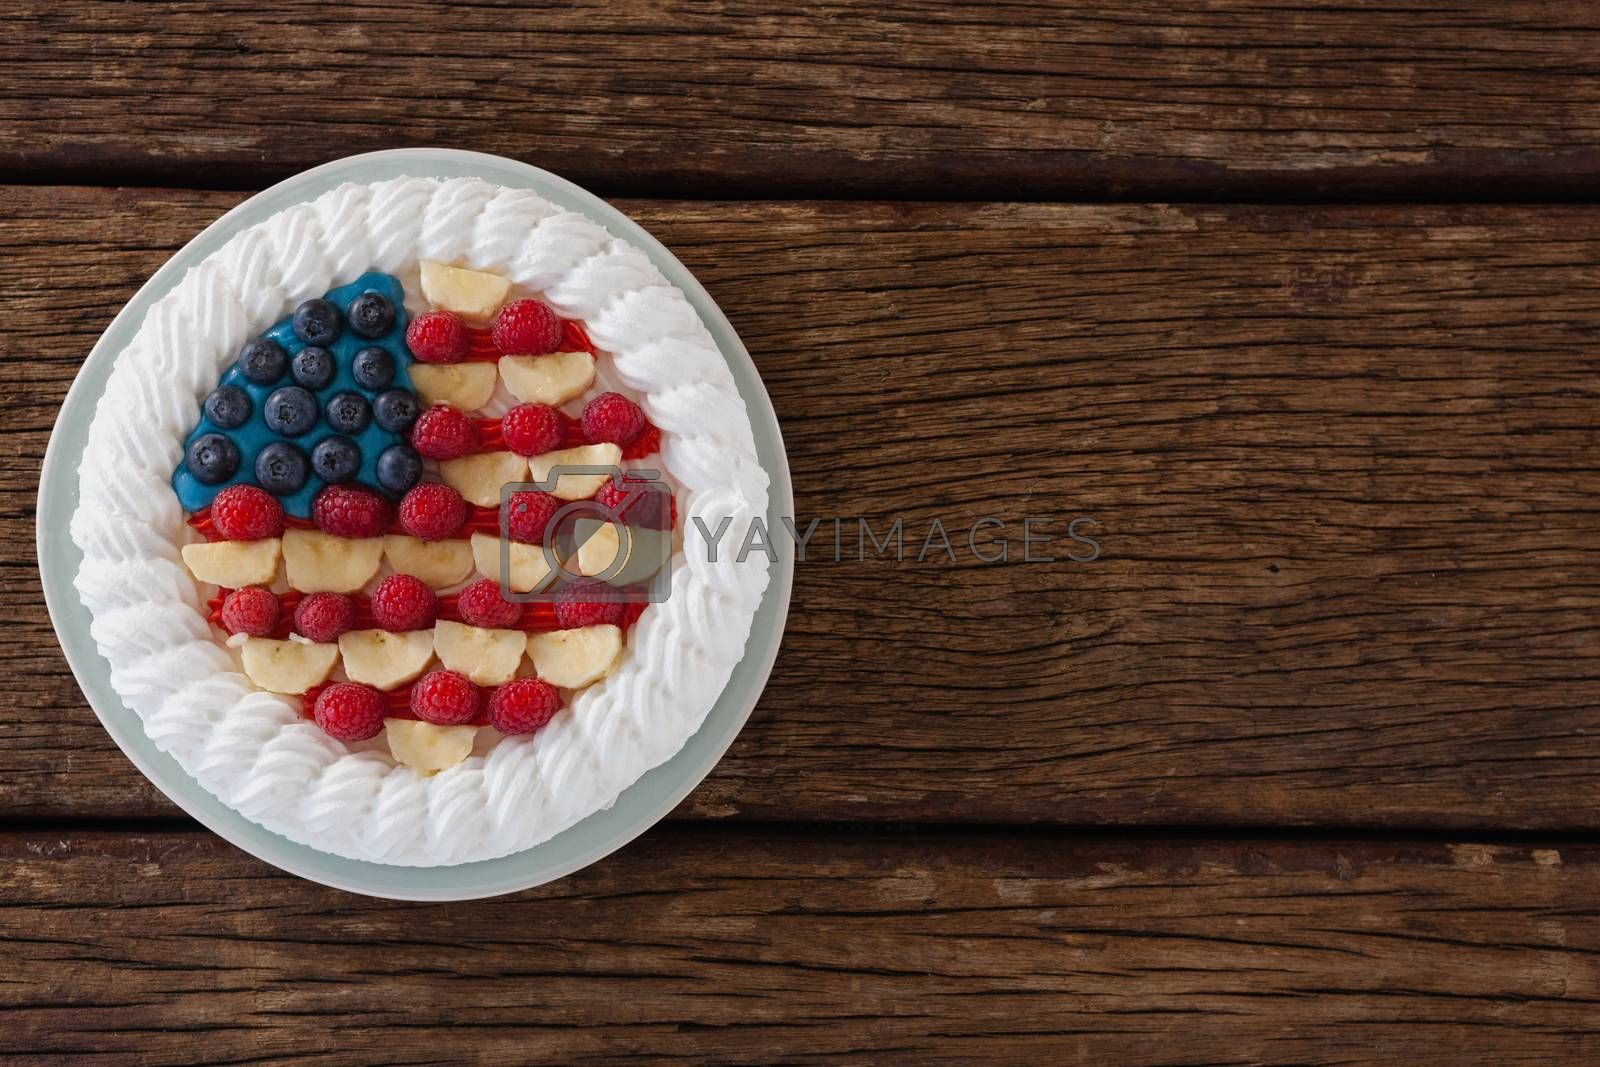 Fruitcake with 4th july theme by Wavebreakmedia